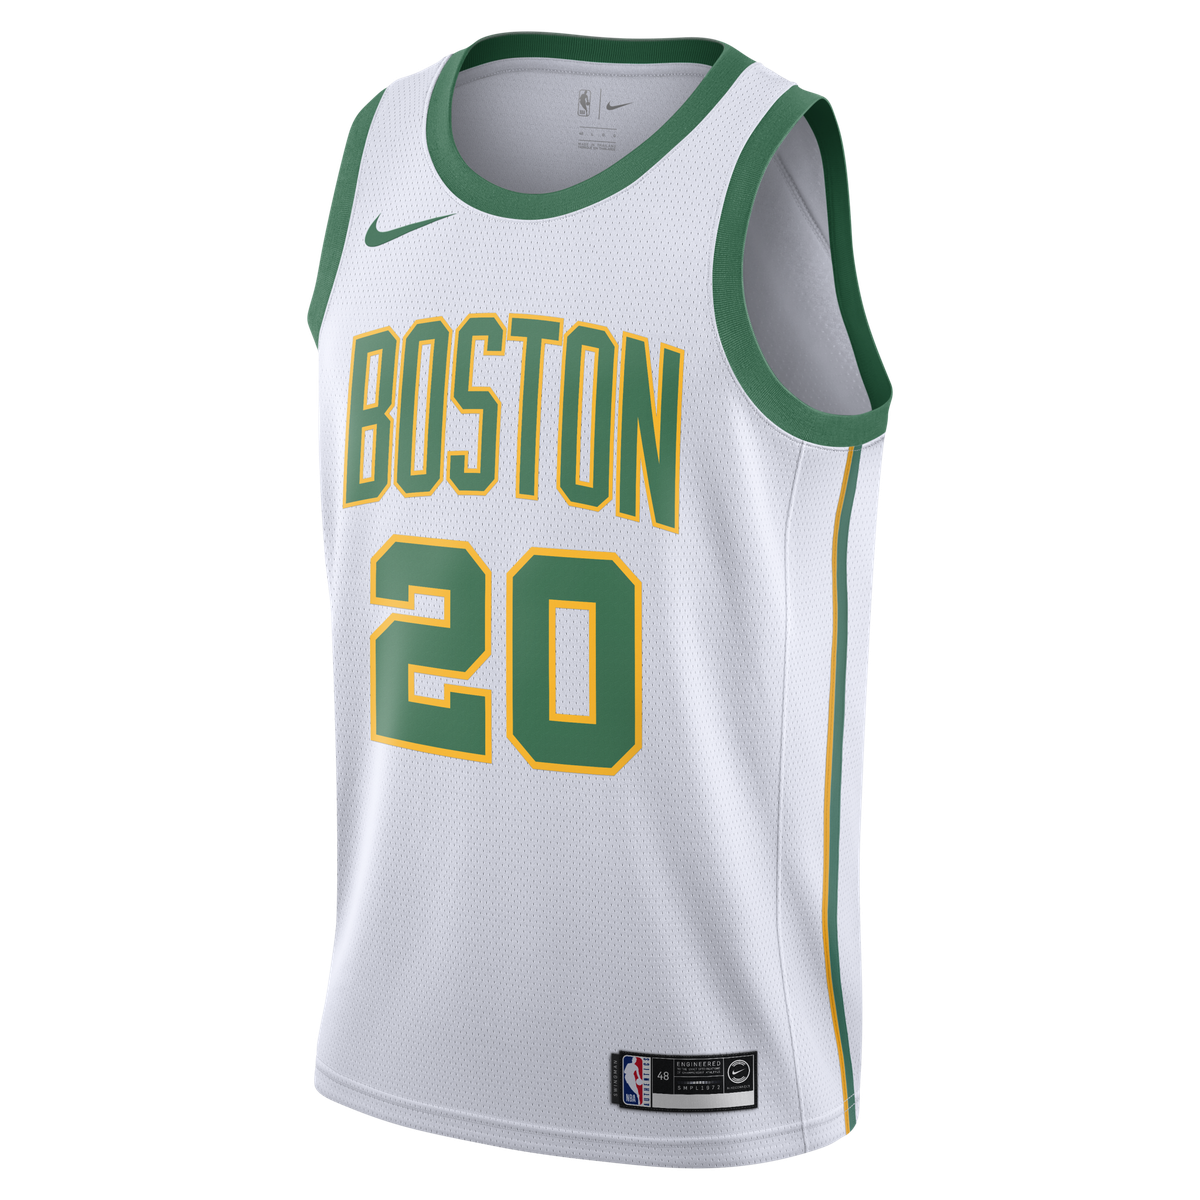 40b3346762d Gordon Hayward Nike Swingman Jersey - City Edition for  109.99 Fanatics